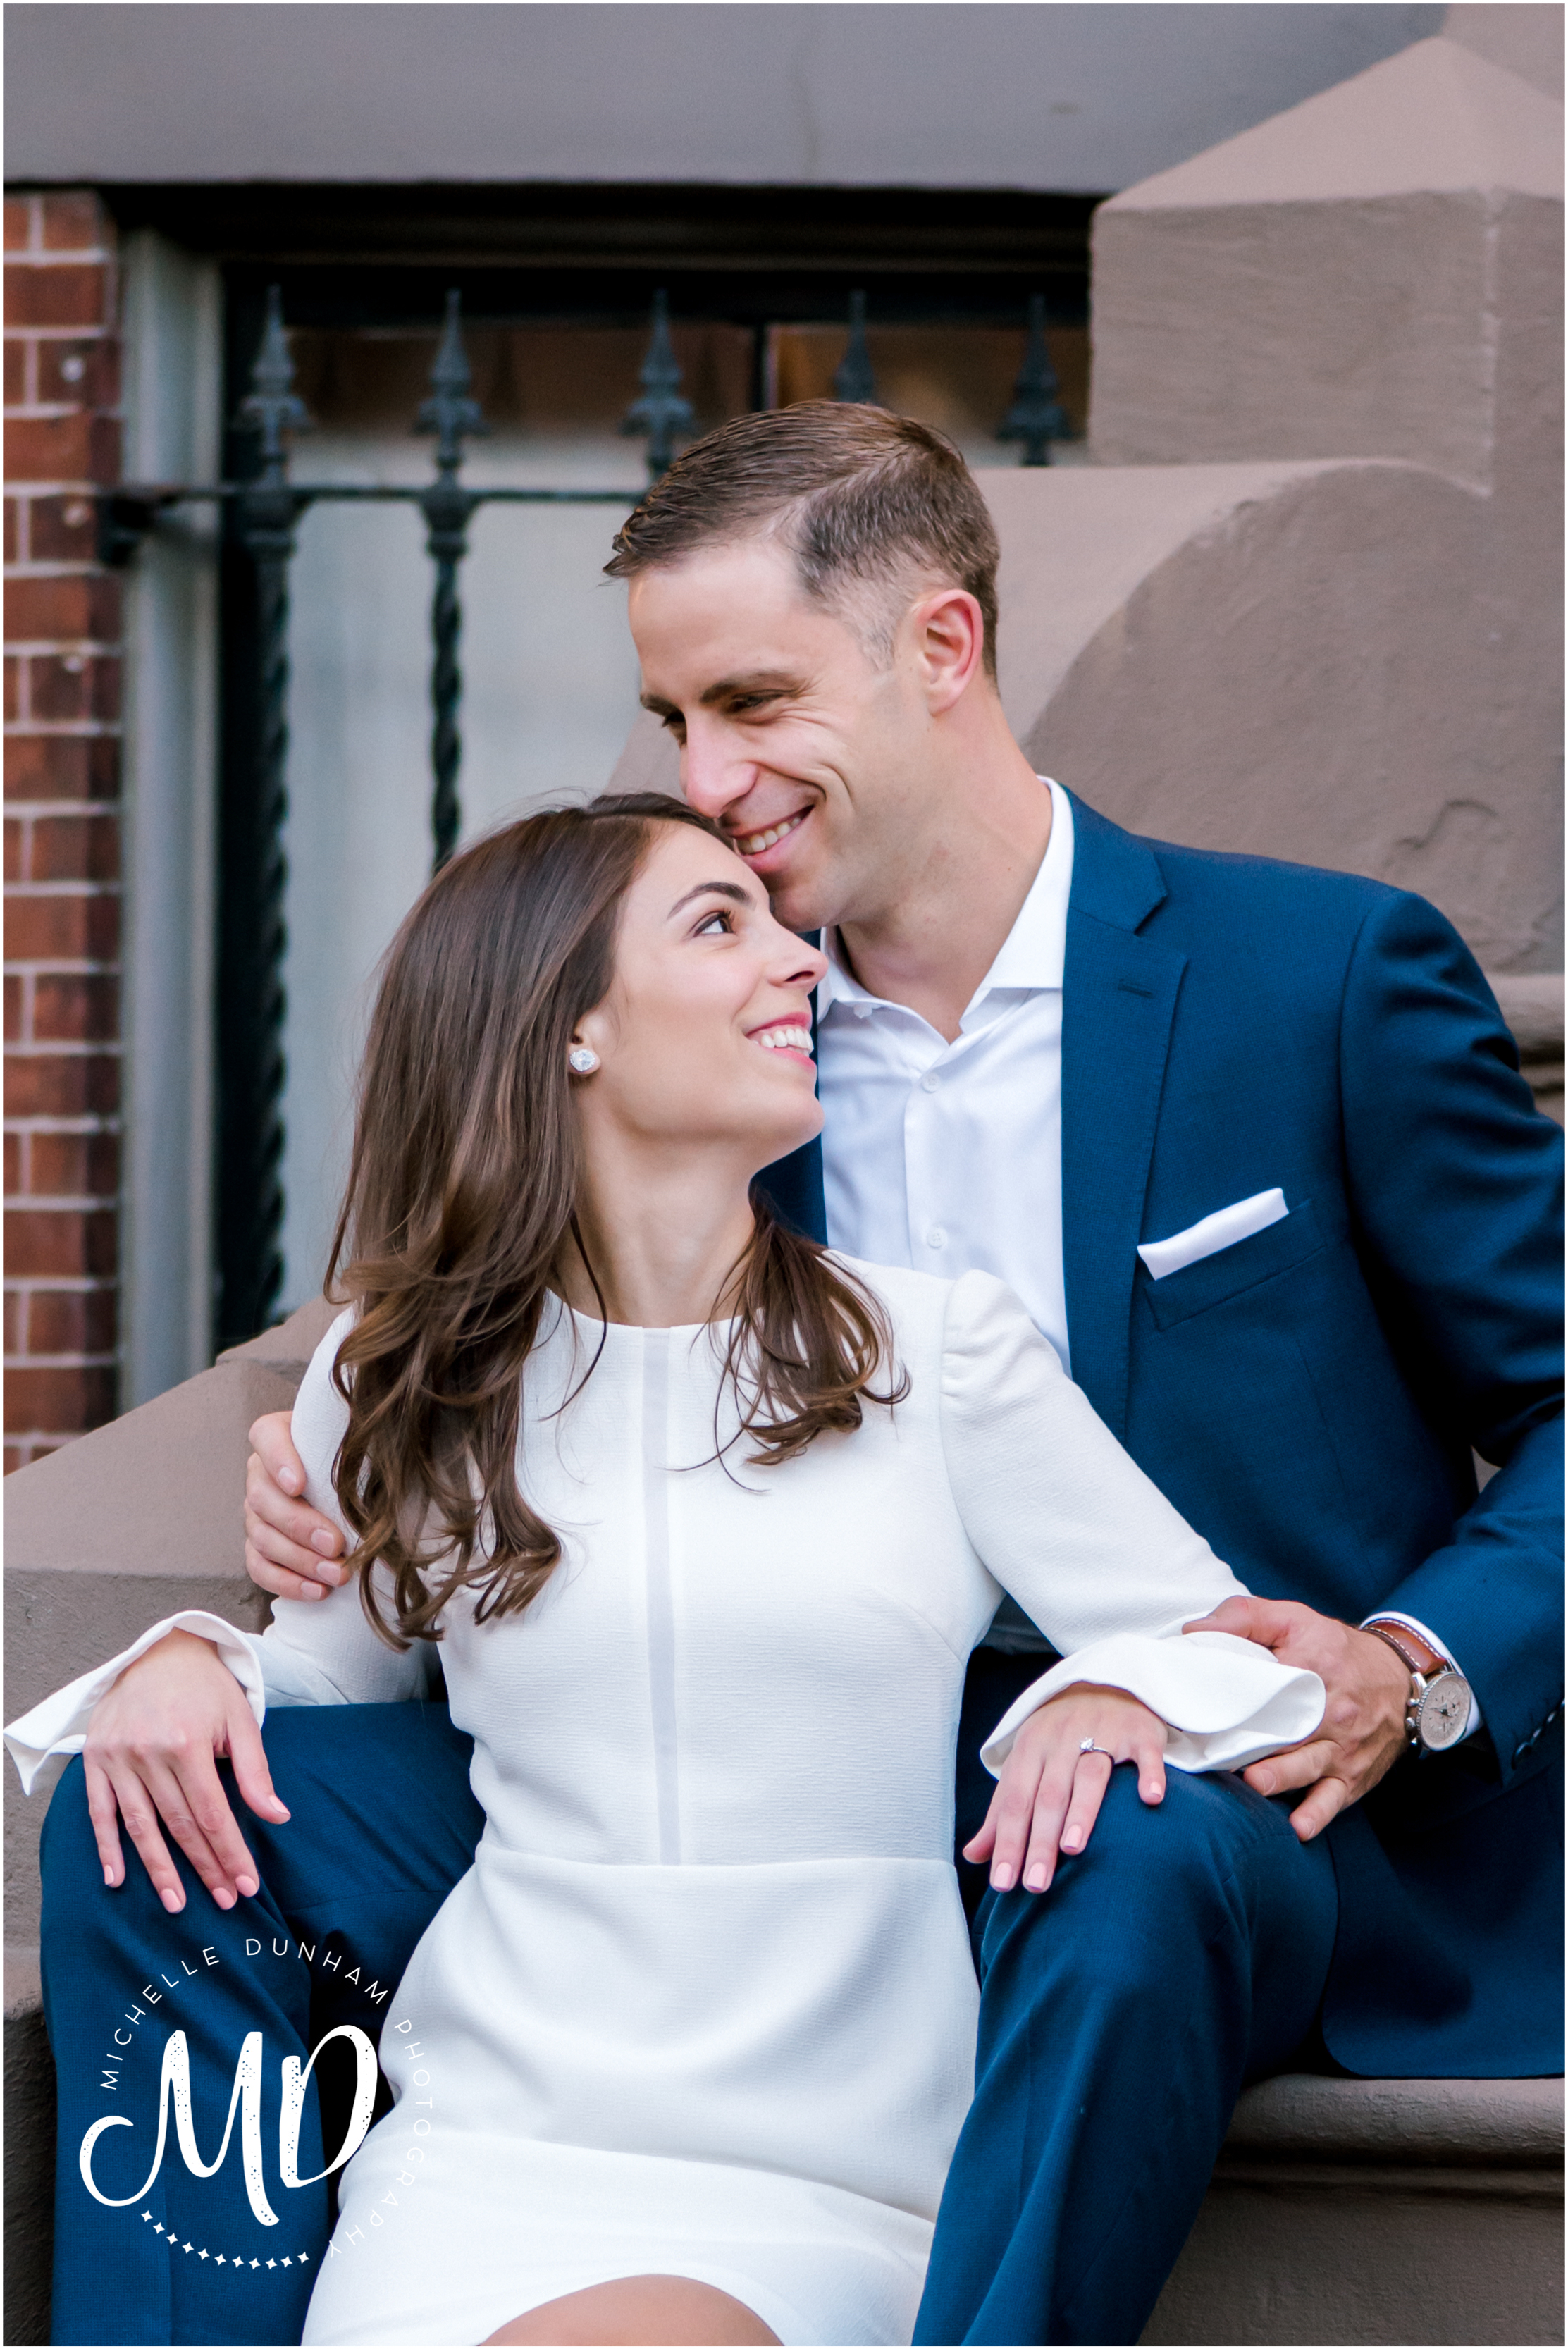 Michelle-Dunham-Photography-Engagement-South-End-Boston-9.jpg